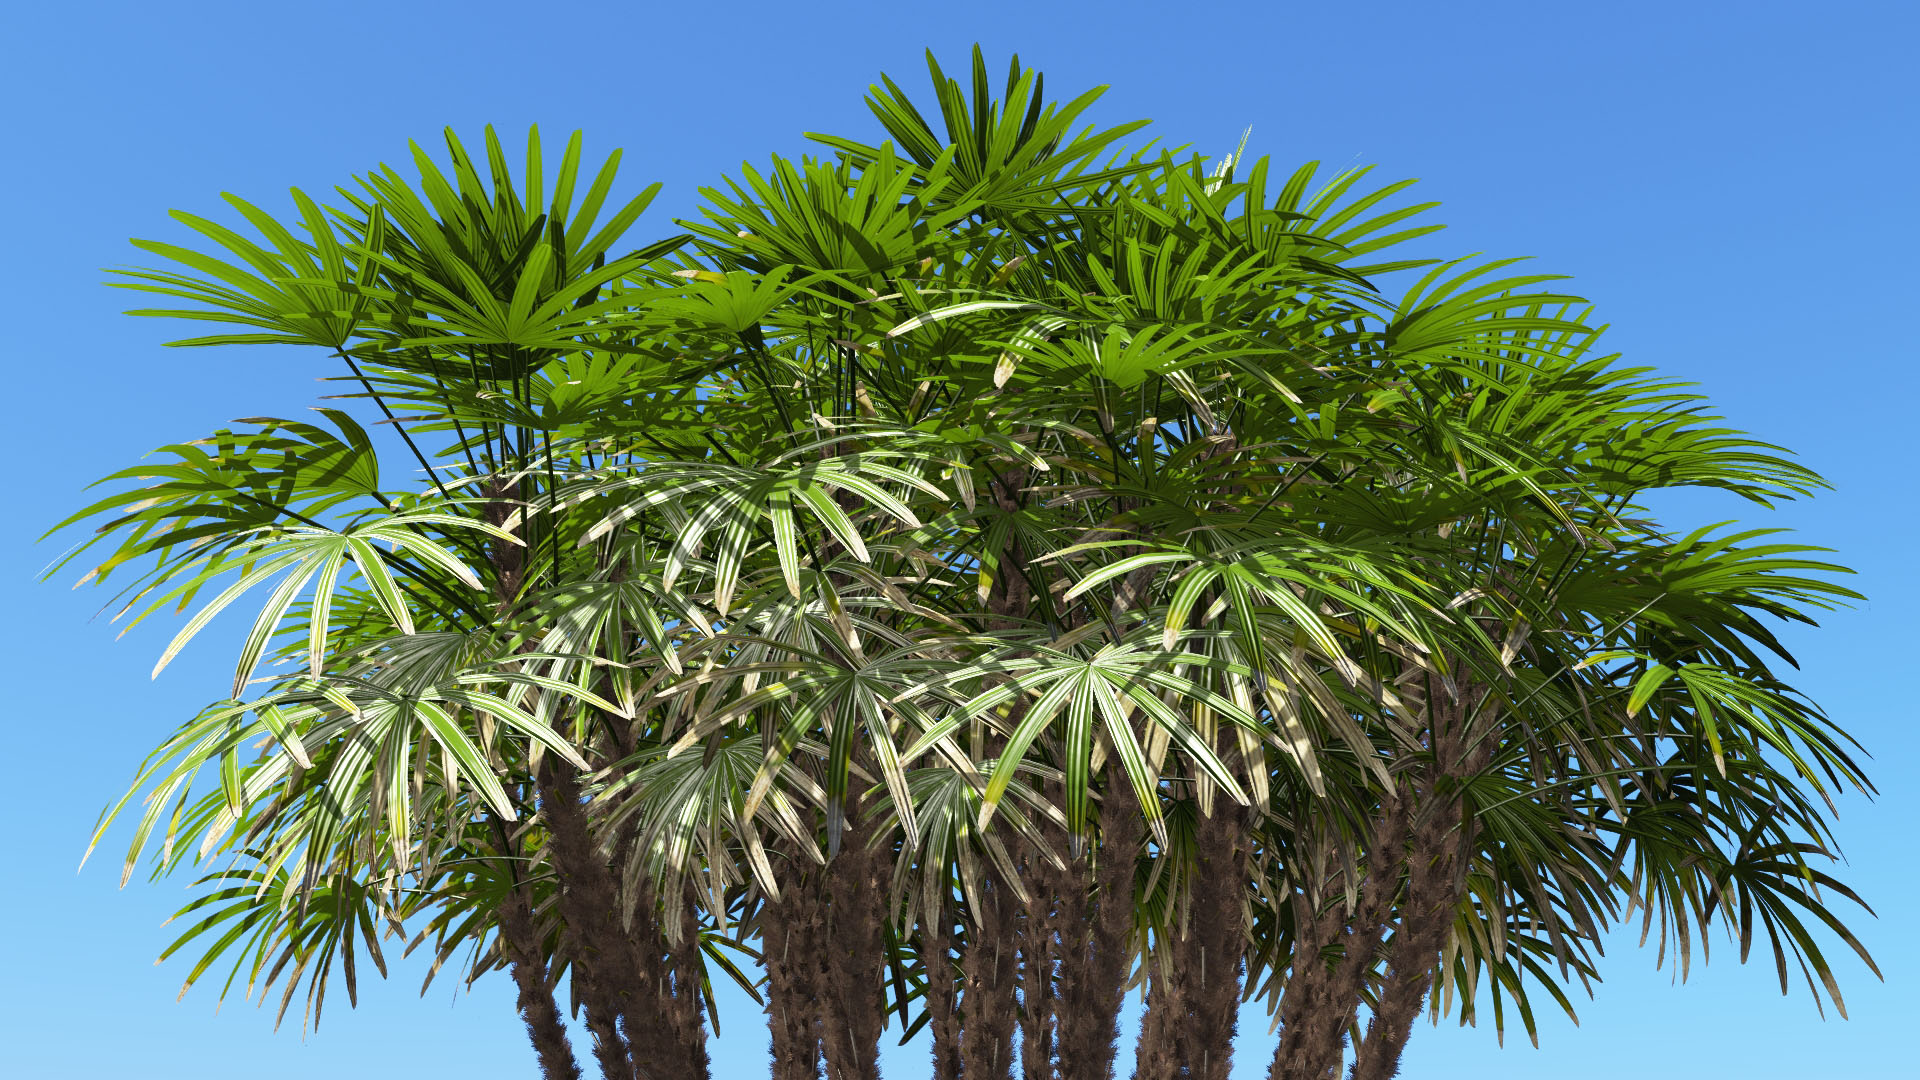 3D model of the Bamboo palm Rhapis excelsa close-up